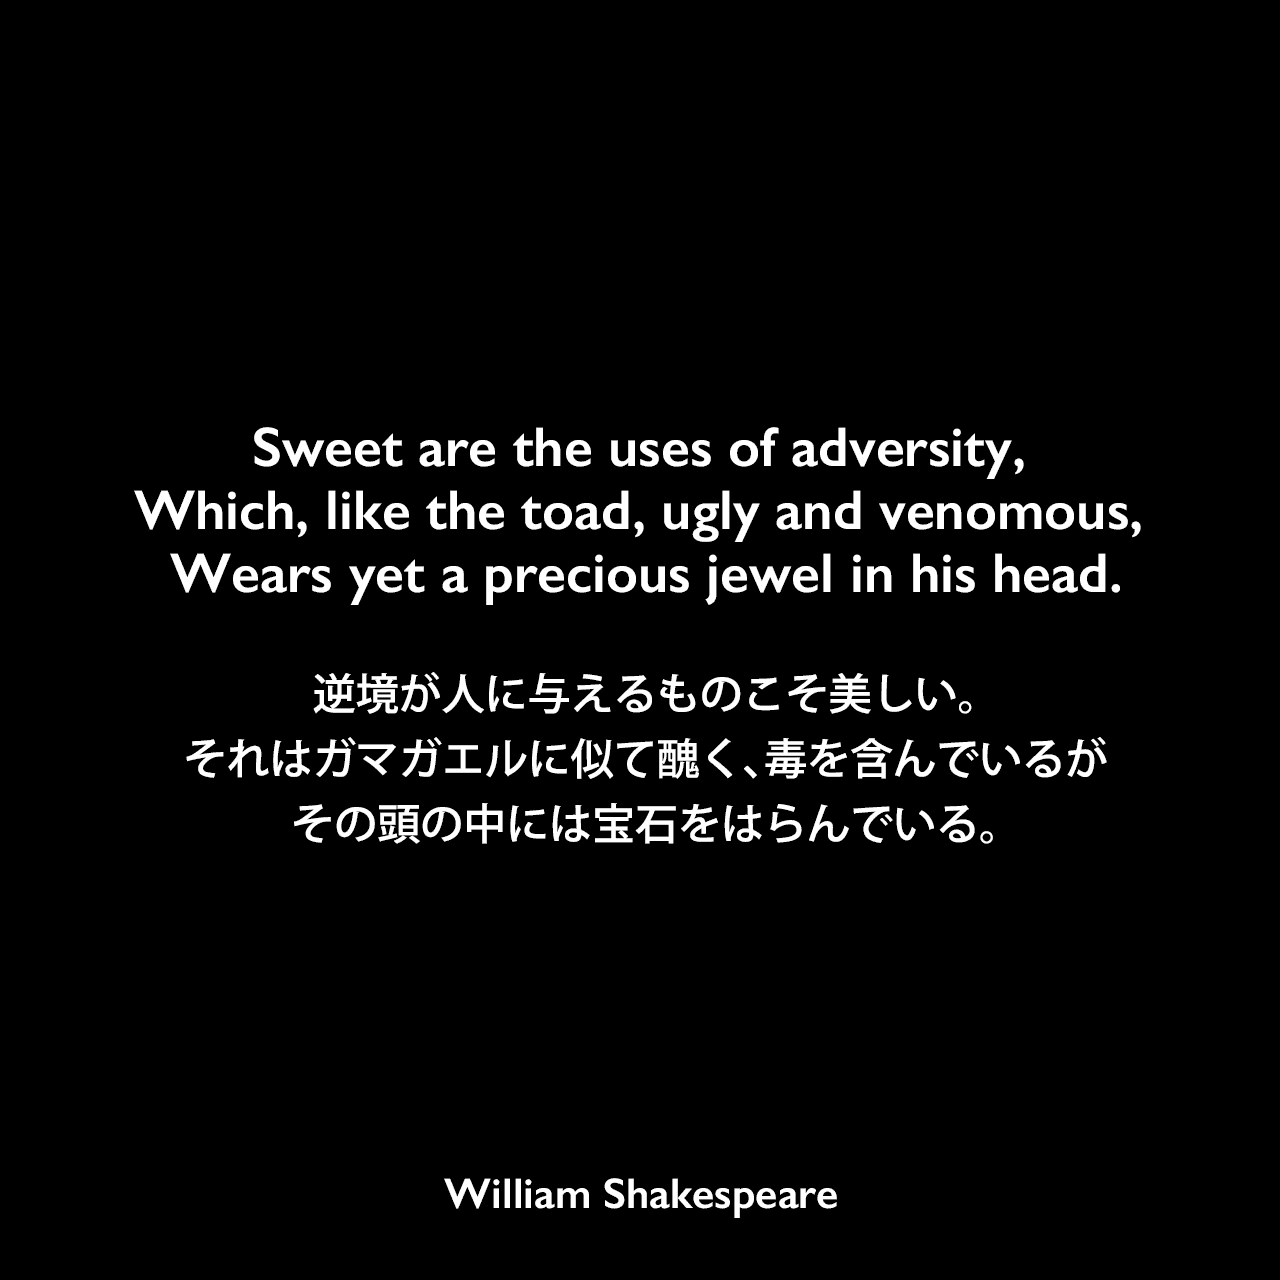 Sweet are the uses of adversity, Which, like the toad, ugly and venomous, Wears yet a precious jewel in his head.逆境が人に与えるものこそ美しい。それはガマガエルに似て醜く、毒を含んでいるが、その頭の中には宝石をはらんでいる。William Shakespeare